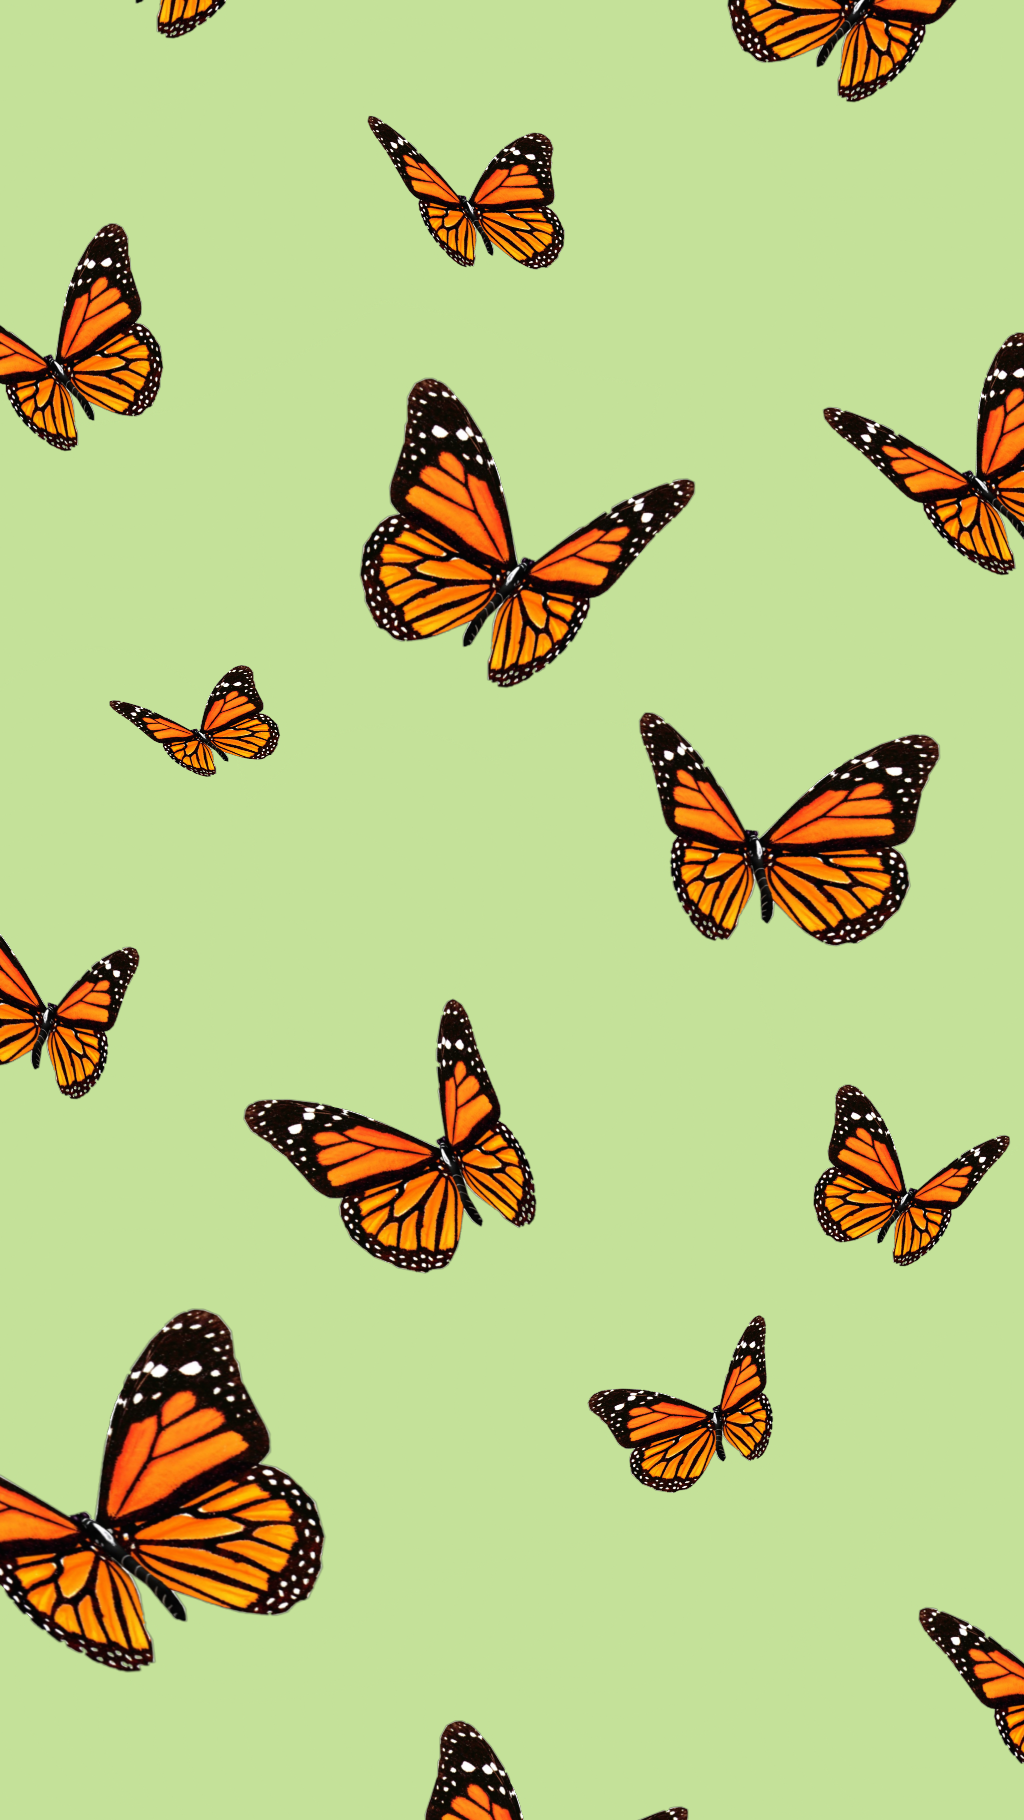 Orange Butterfly Wallpaper Vsco Hd Football